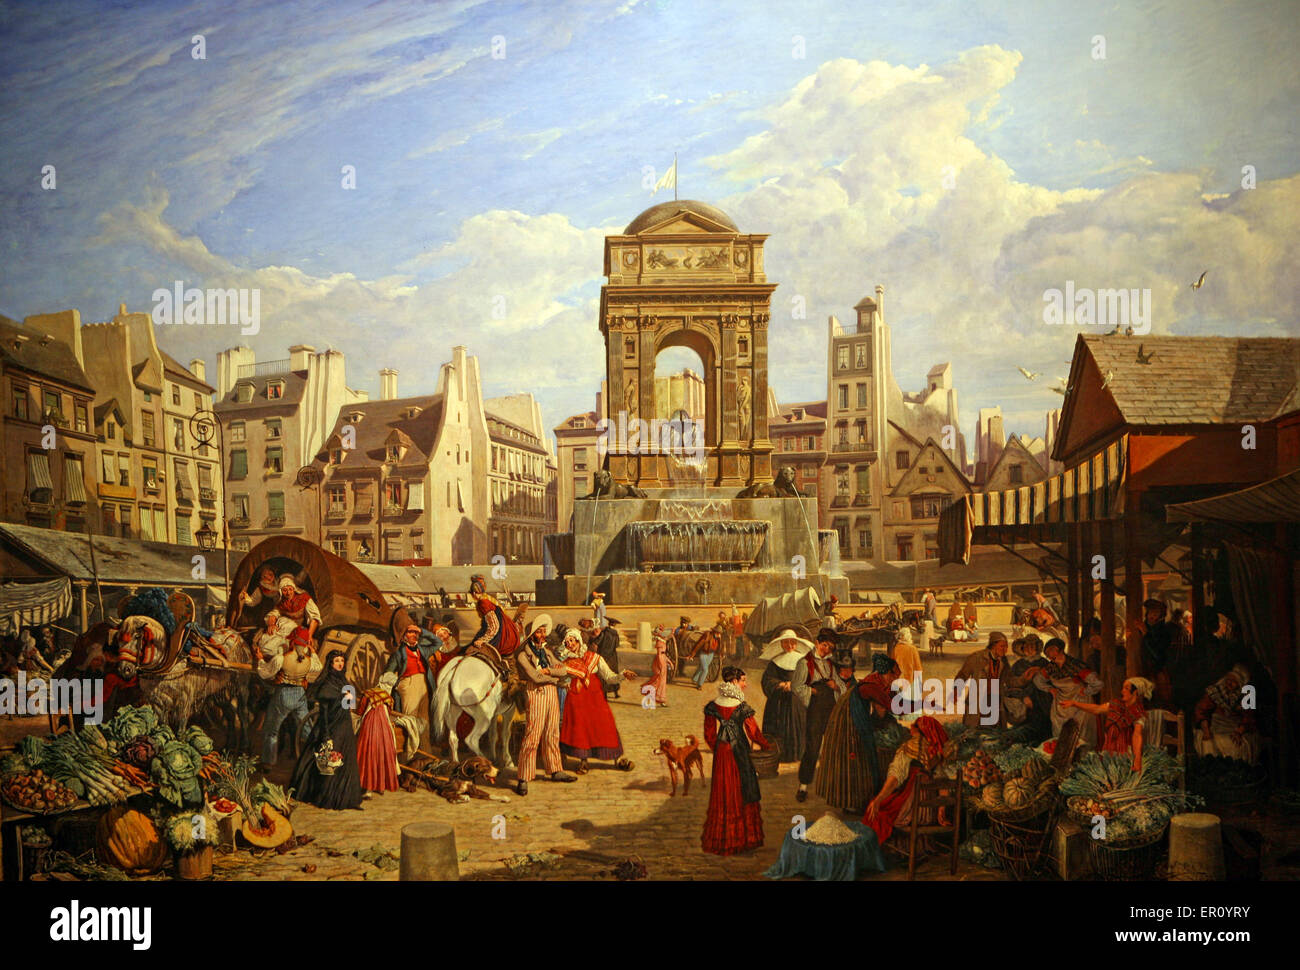 John James Chalon - Le Marche et la fontaine des innocents en 1822 The market and fountain of the innocent in 1822 Stock Photo